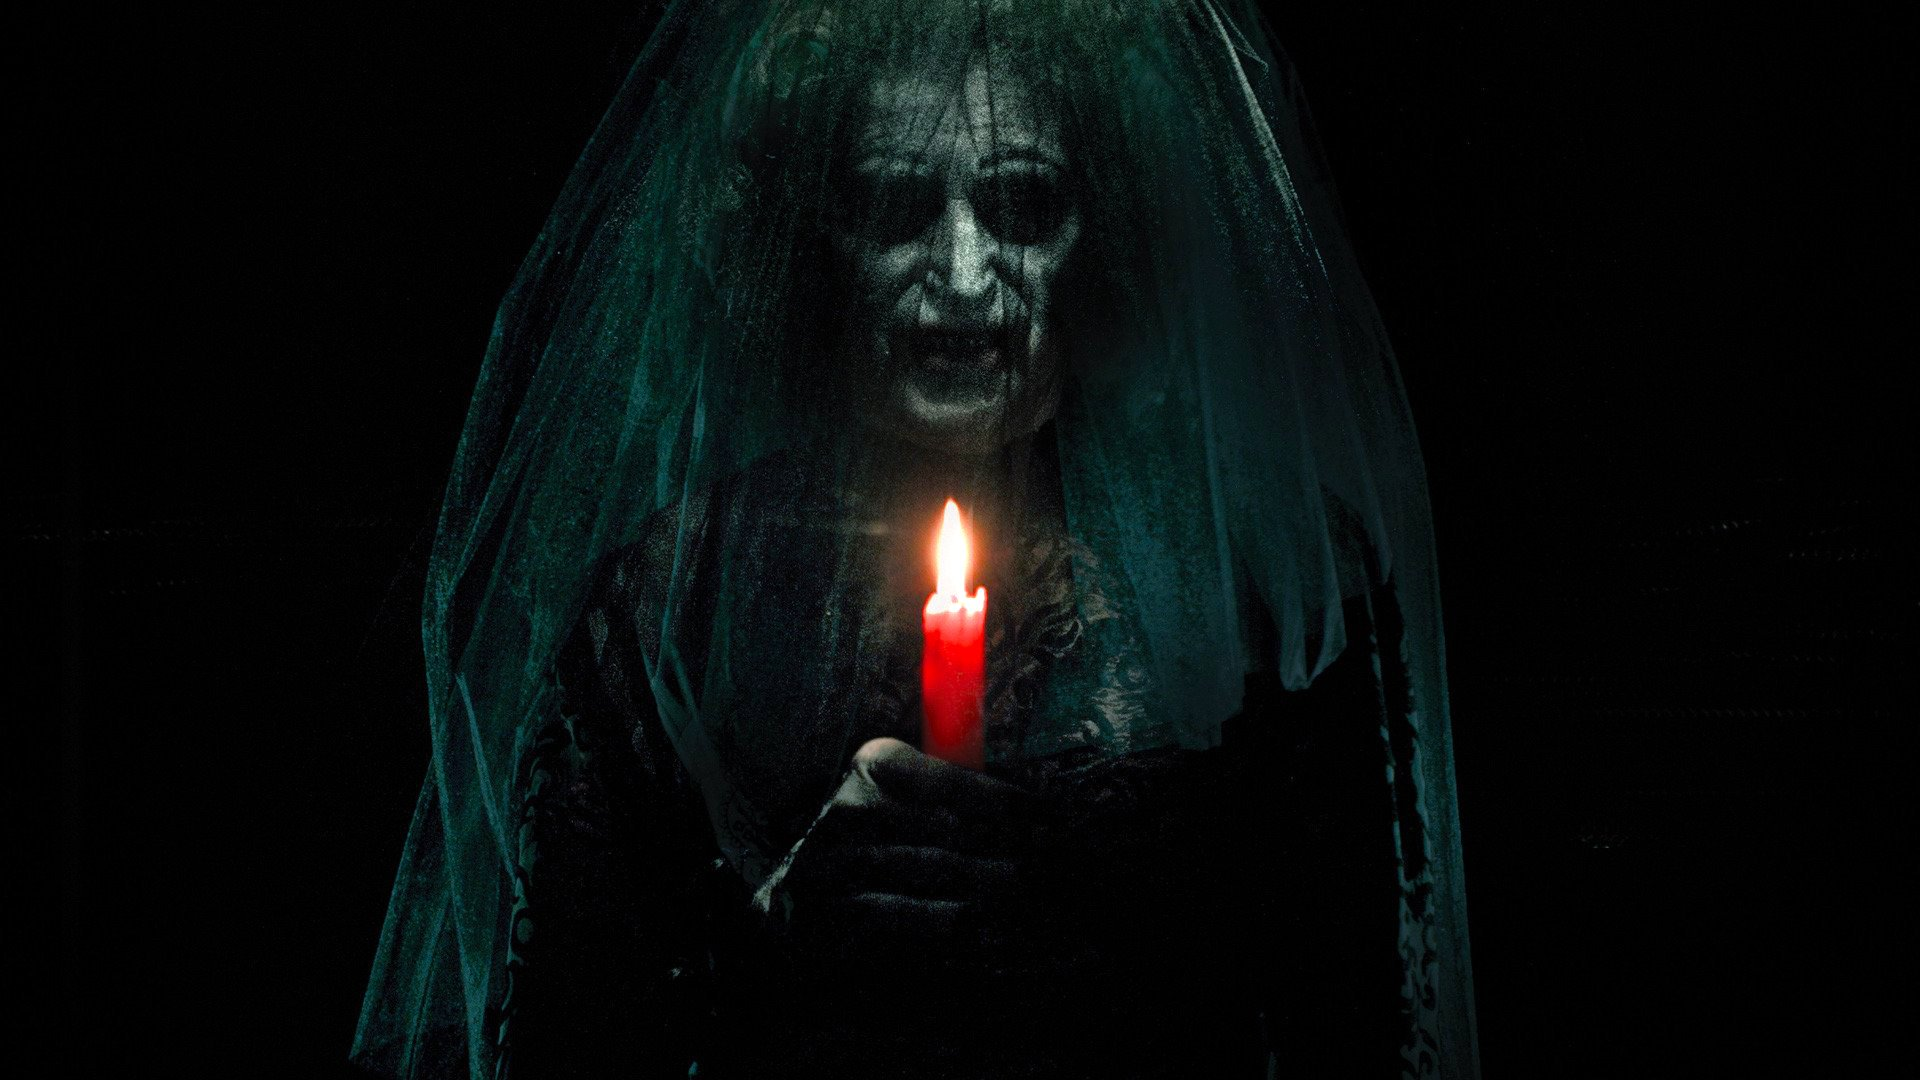 5 Insidious Hd Wallpapers Background Images Wallpaper Abyss